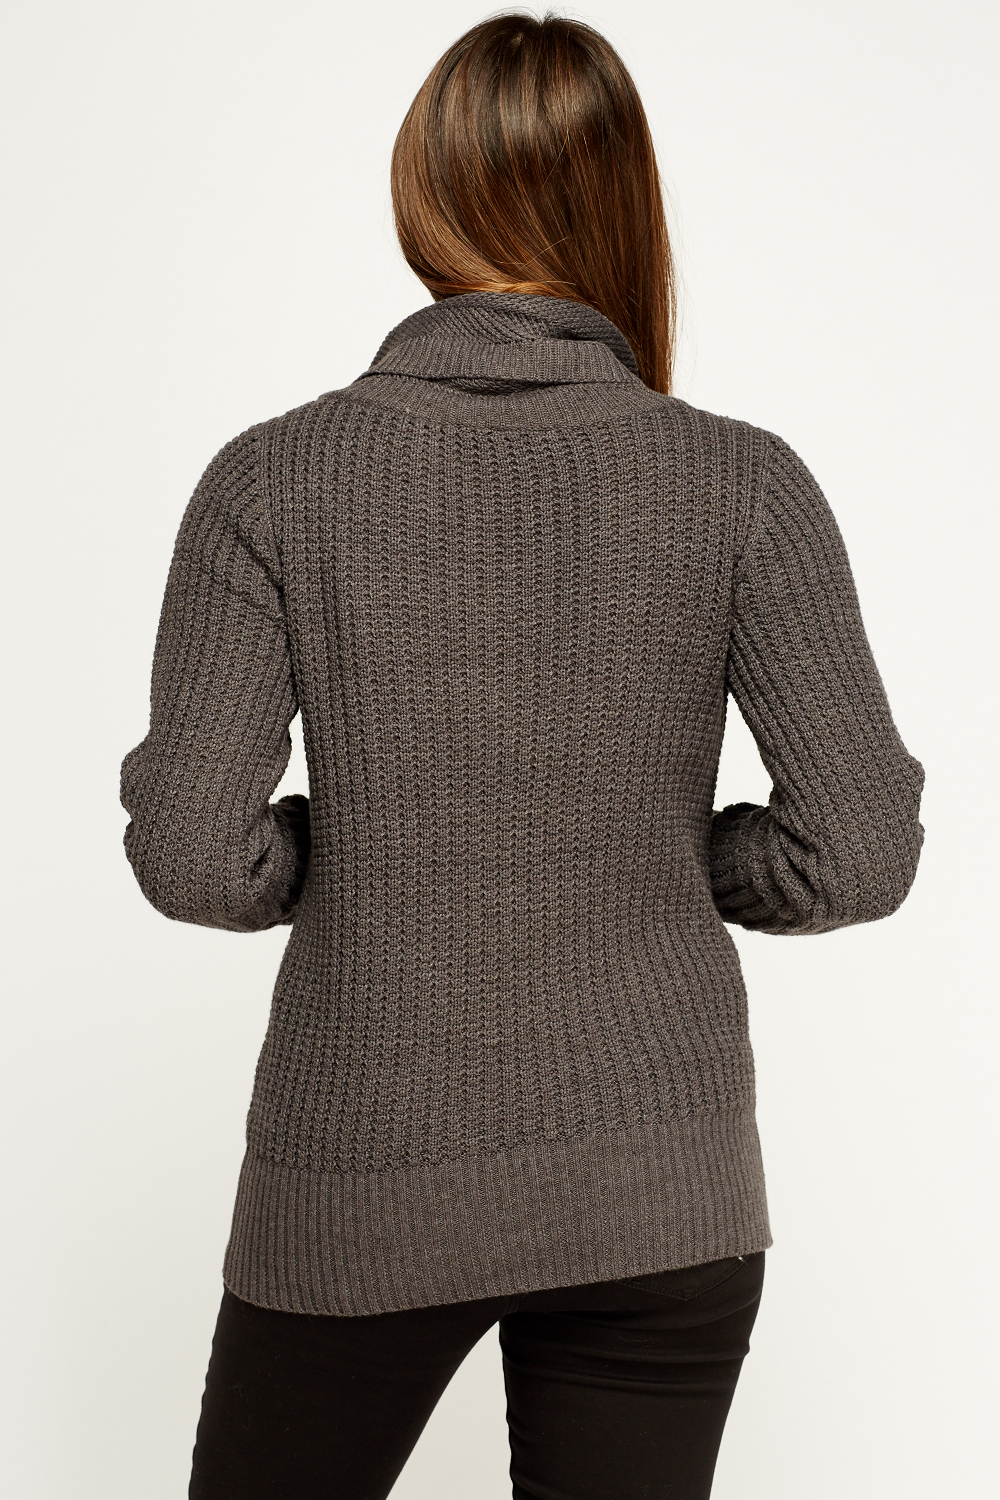 Button Neck Loose Knit Jumper Just 5 Iphone Wallpapers Free Beautiful  HD Wallpapers, Images Over 1000+ [getprihce.gq]